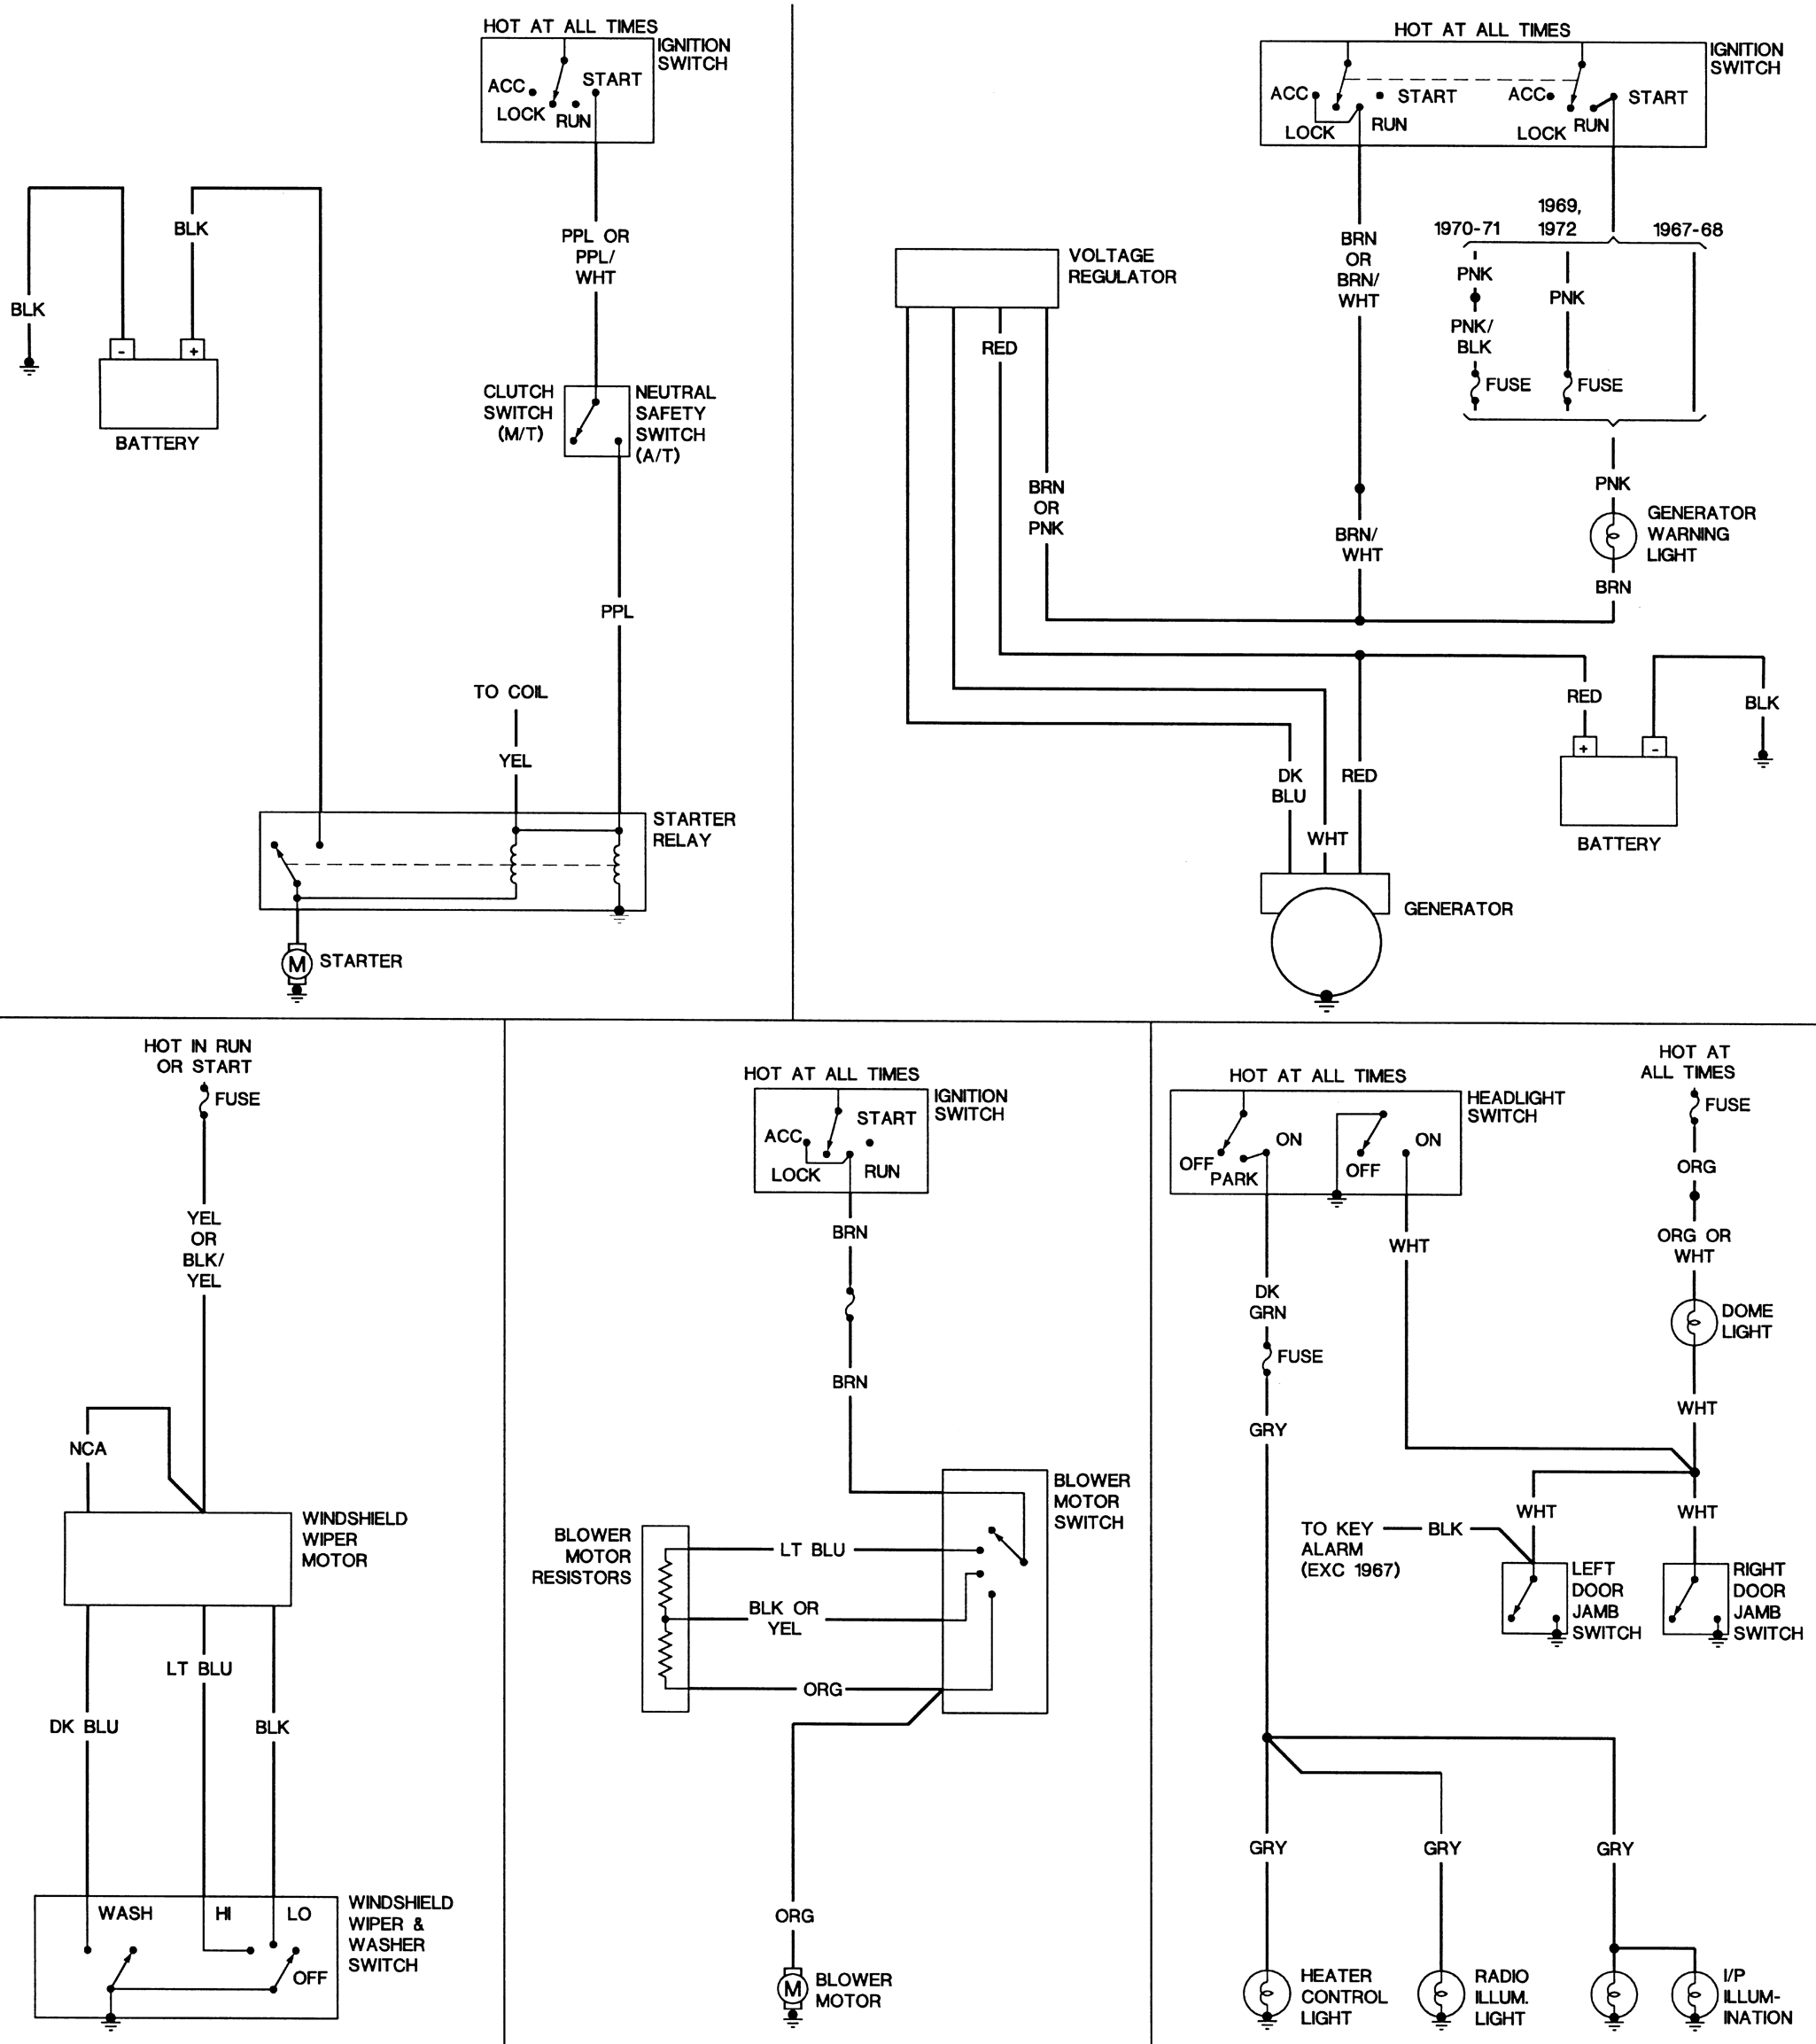 wiring diagram camaro headlight hid with 1967 Camaro Wiring Diagram Gas Gauge on Saab Intercooler Location moreover 25w Type B Bulb Wiring Diagrams further 2001 Silverado Fog L  Wiring Harness moreover Halo Headlight Wiring Help Chat besides Car Headlight Wiring Harness Diagram.